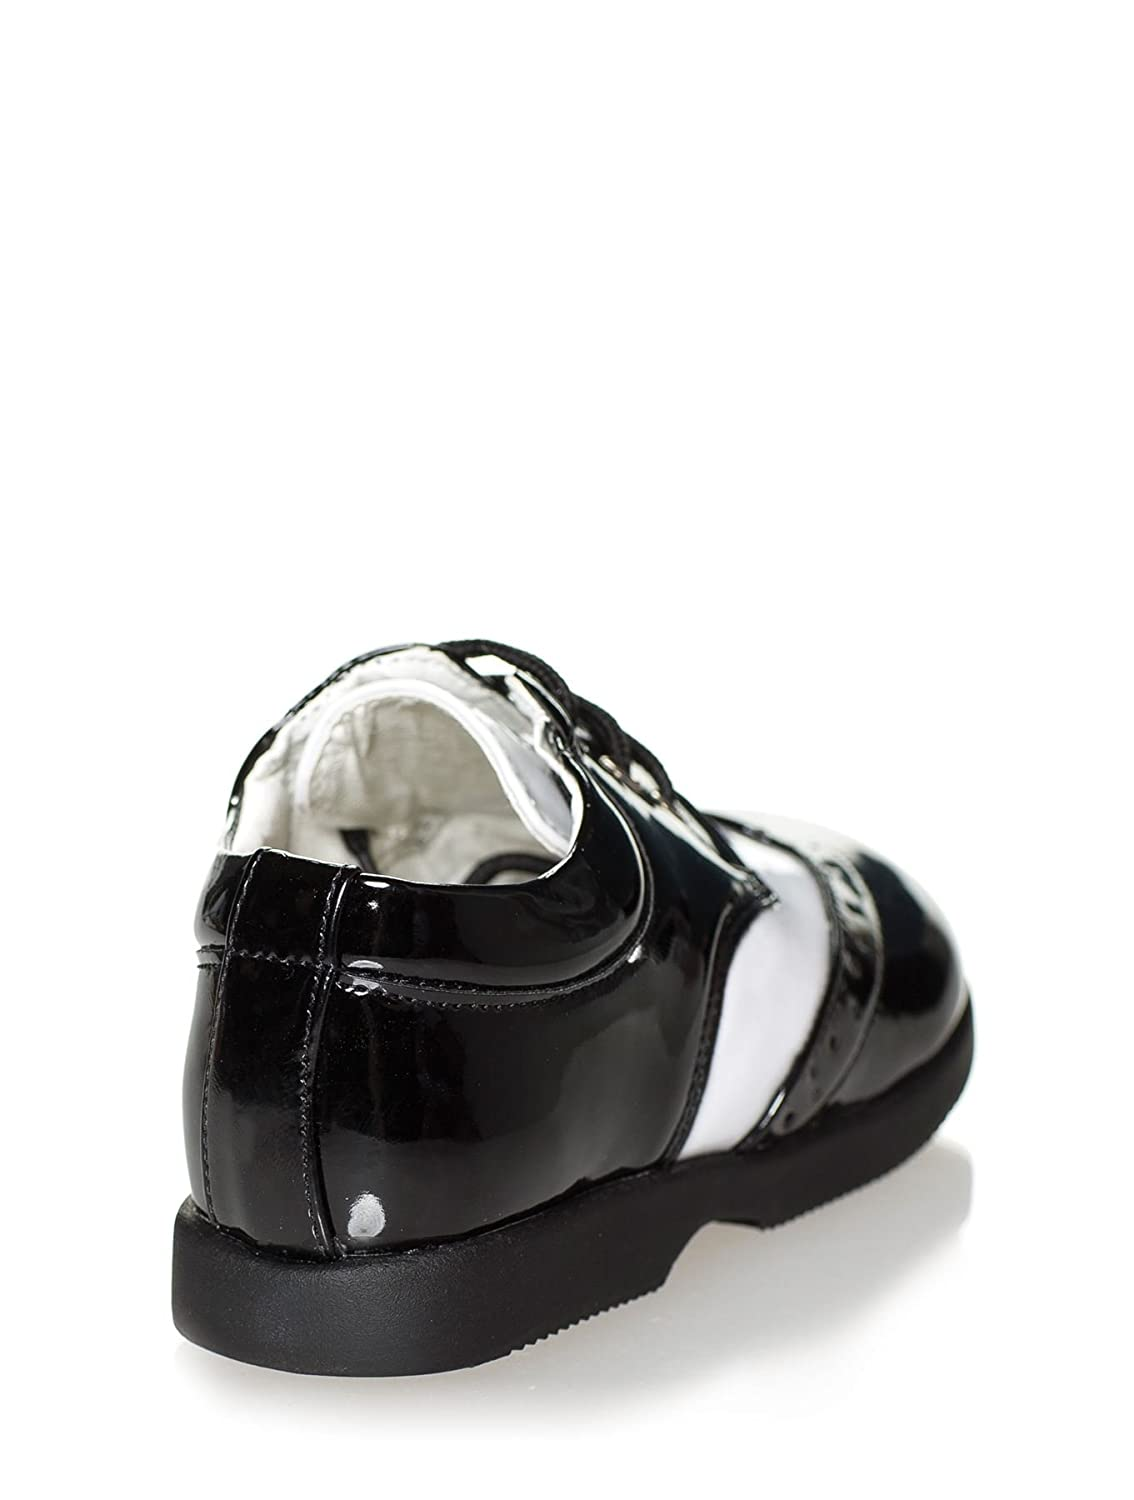 Page Boy Shoes Boys Black /& White Shoes Infant 8 Paisley of London Baby Boys Shoes Infant 1